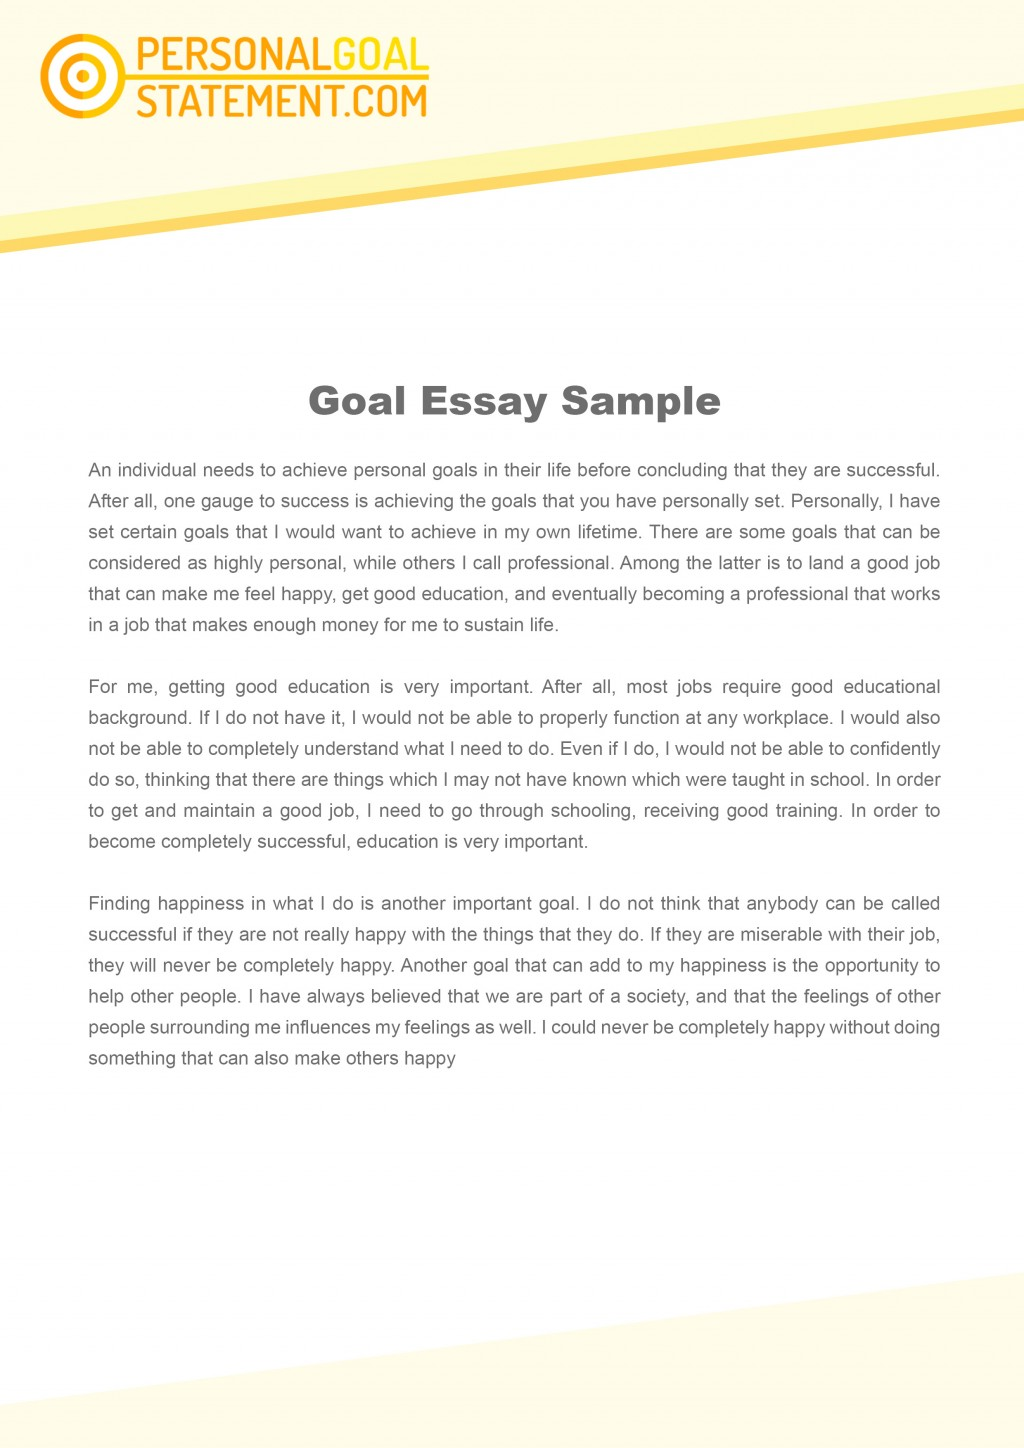 011 Essay Example Goals Career Goal Uniforms Debate Personal Examples L Awesome Sample Graduate School Future For College High Large